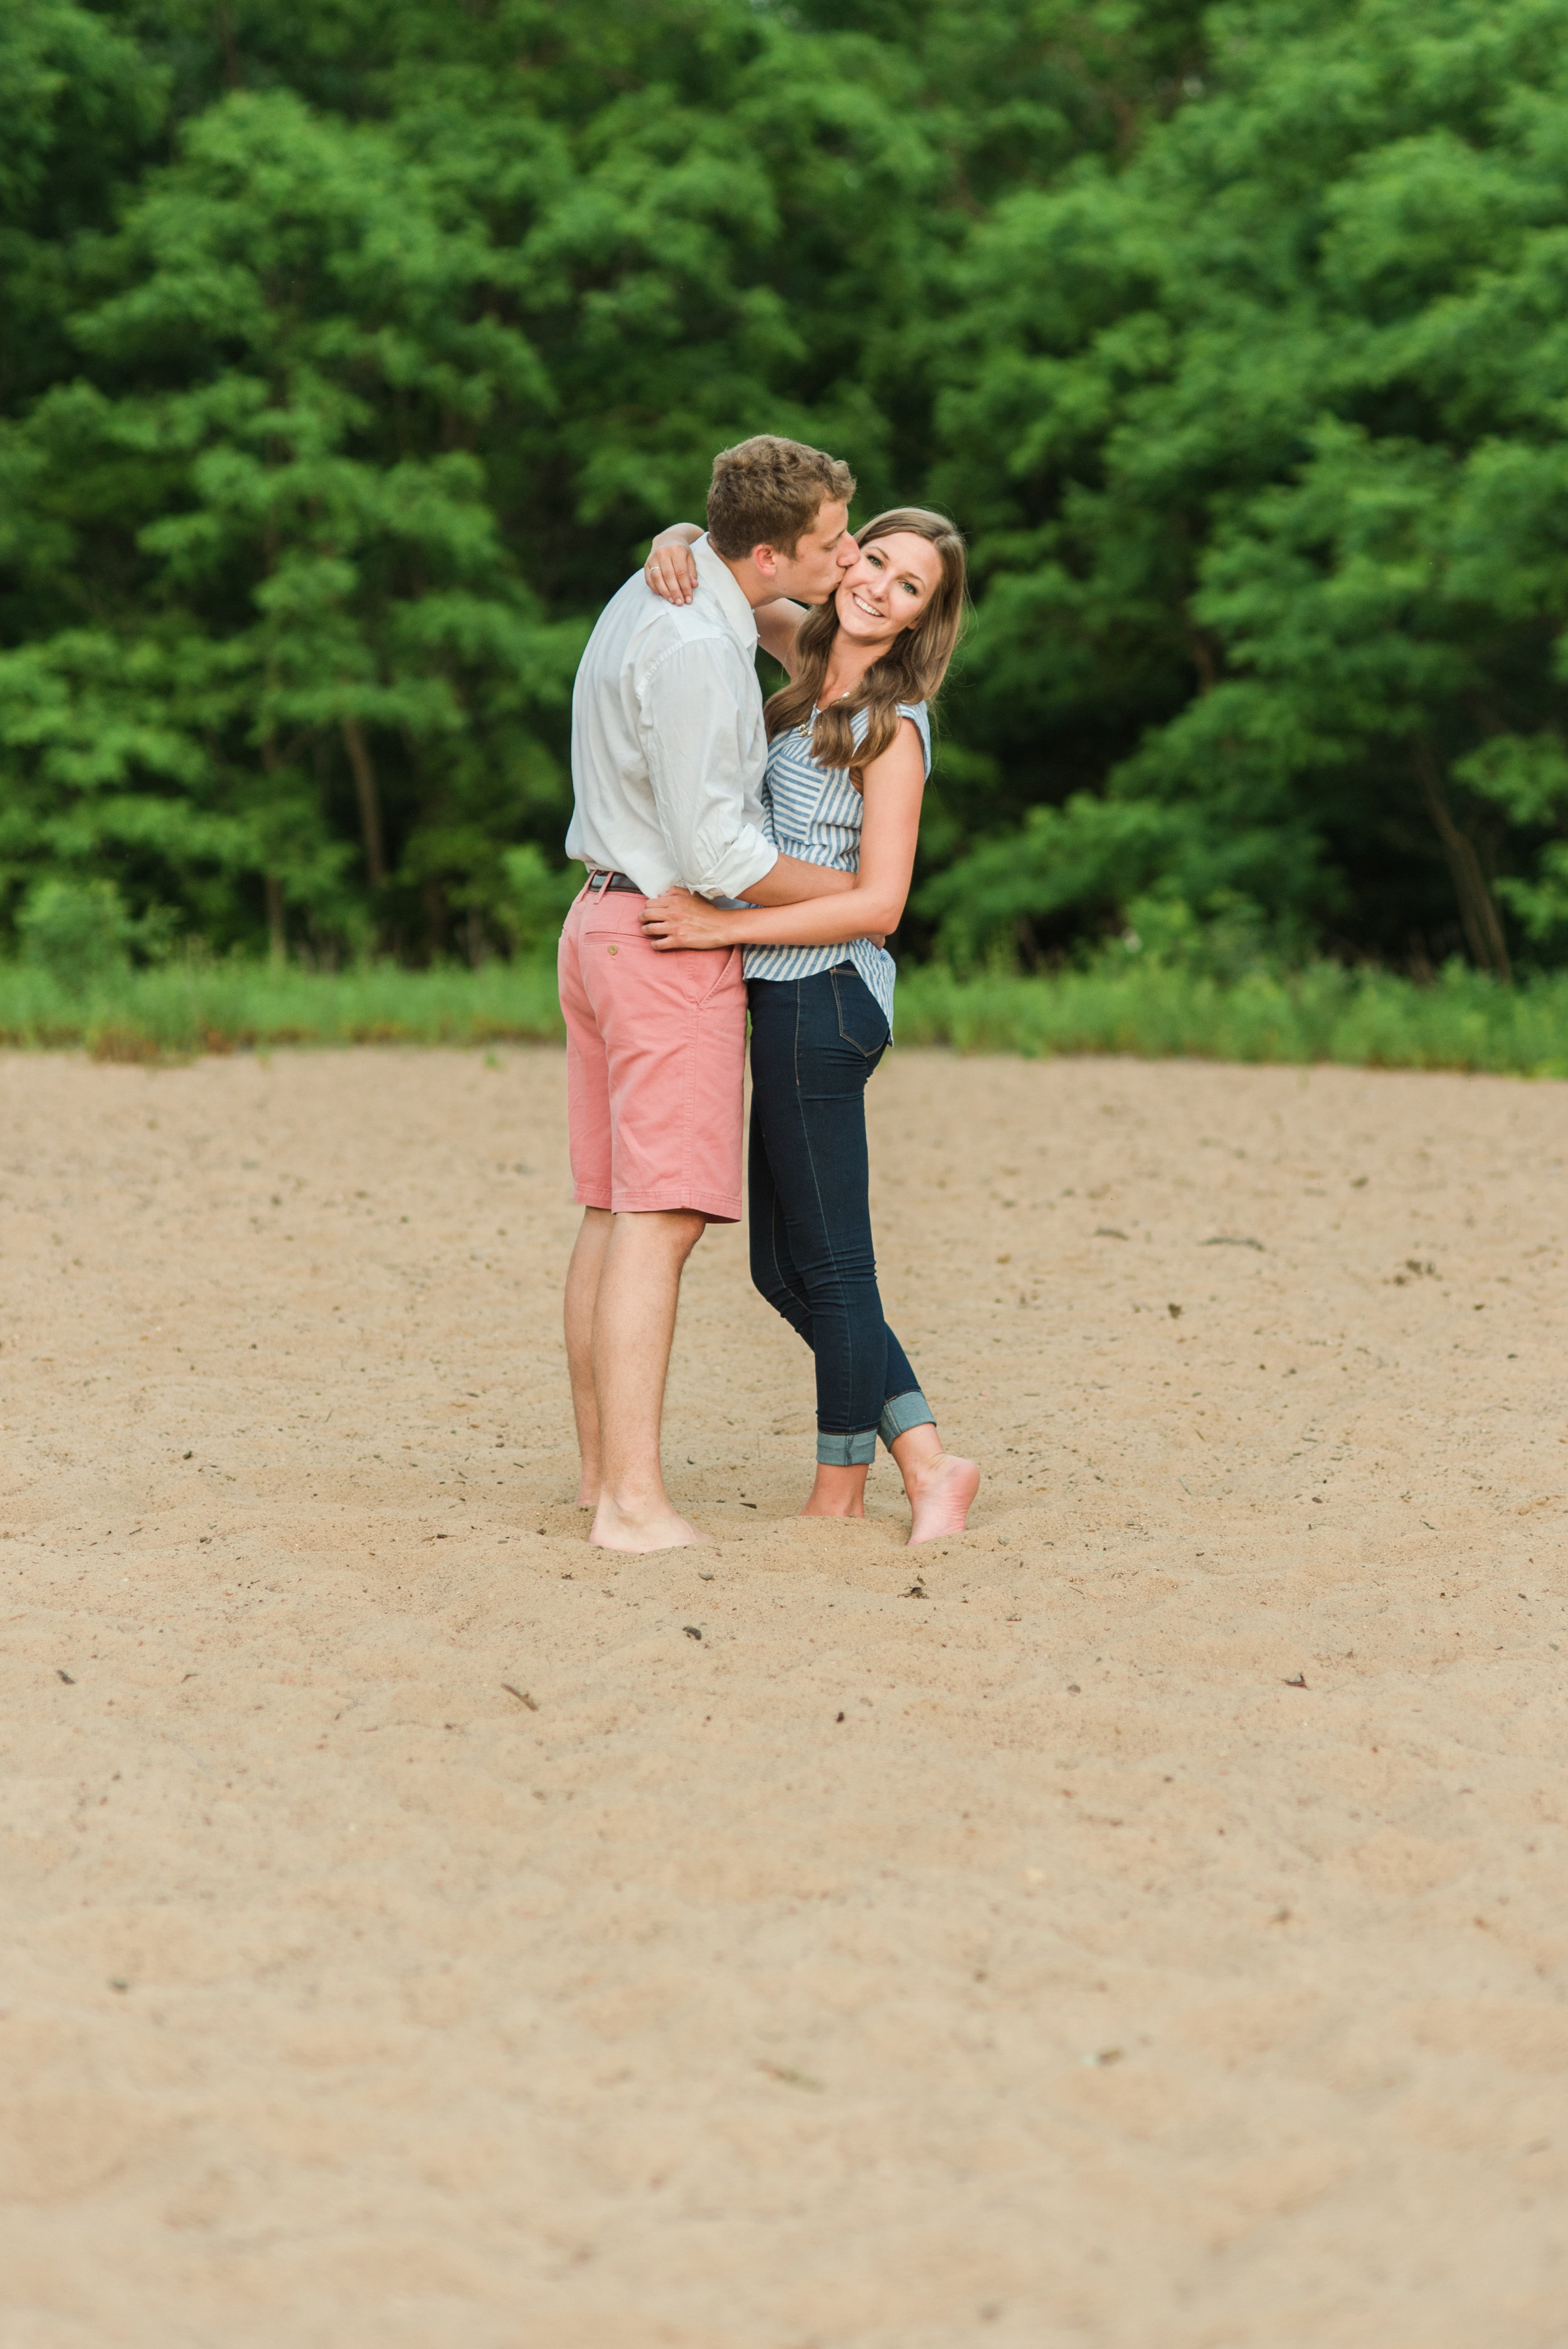 Lumos Photography | Sixpence Events & Planning Wedding Planner | Beach Engagement Session in Minnesota